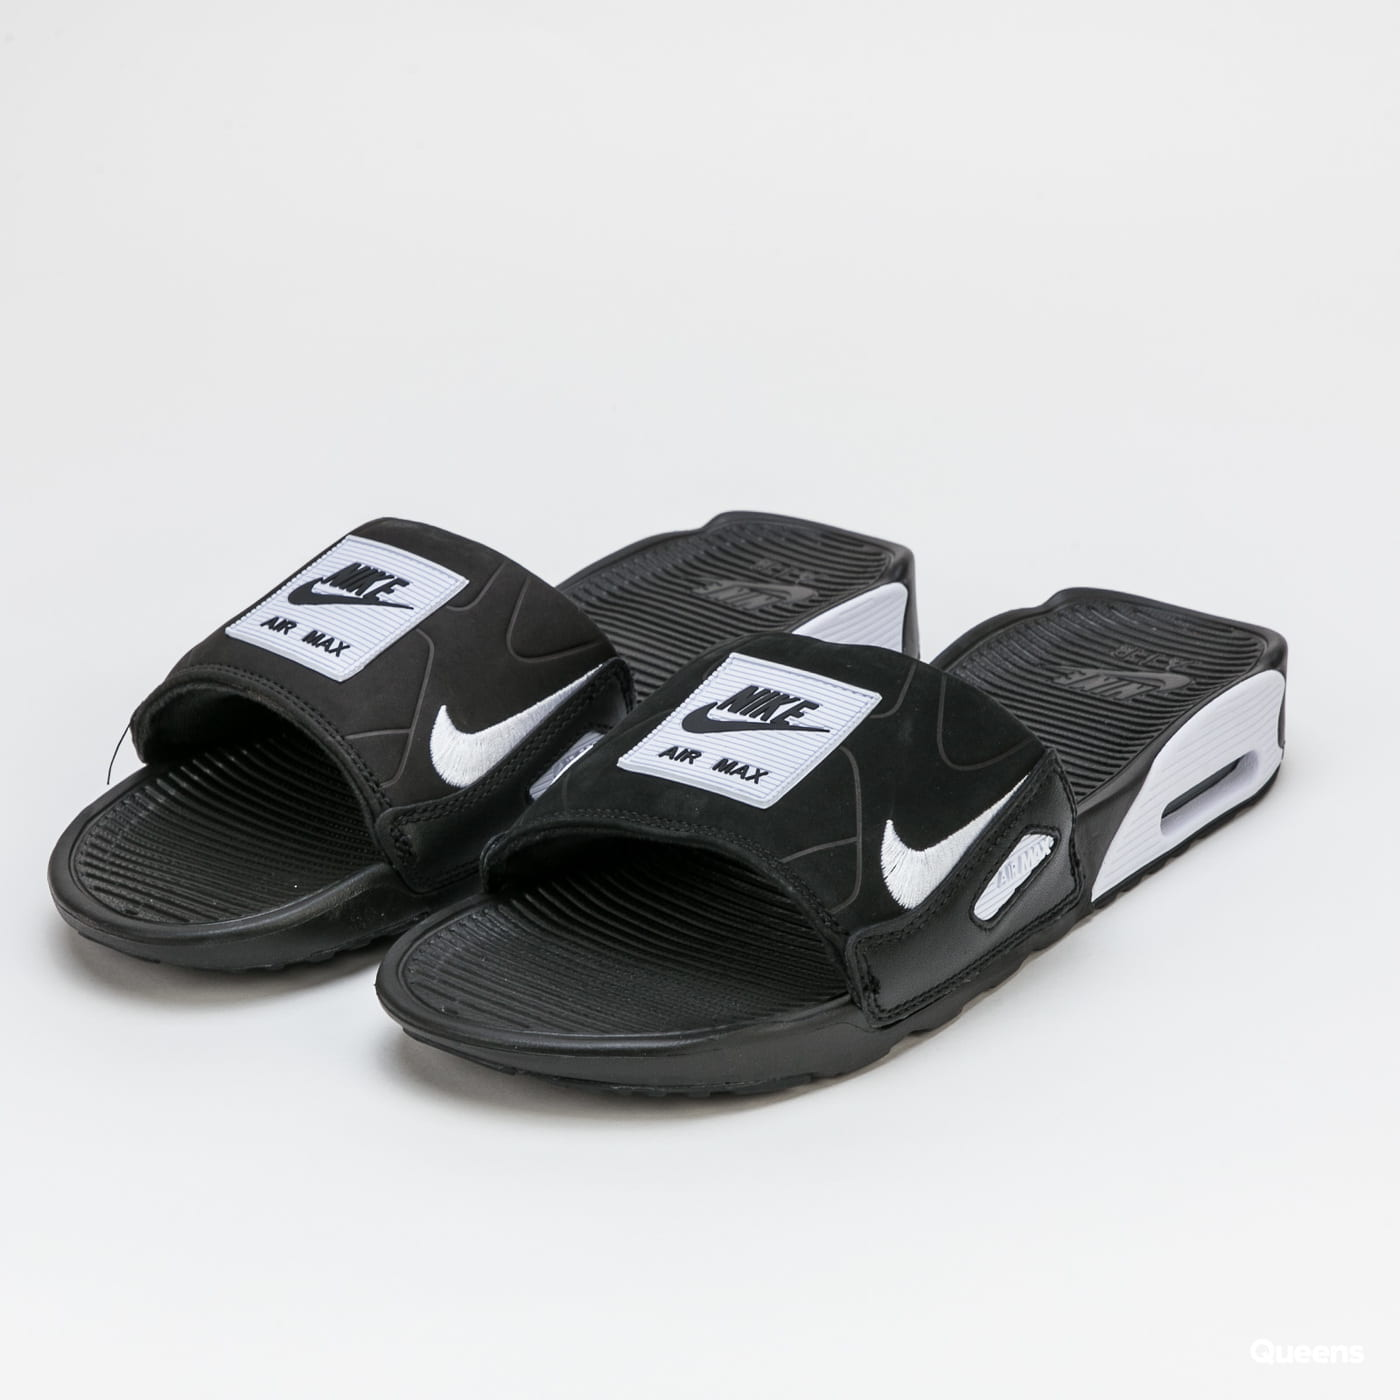 Slippers Nike Air Max 90 Slide Black White Bq4635 002 Queens